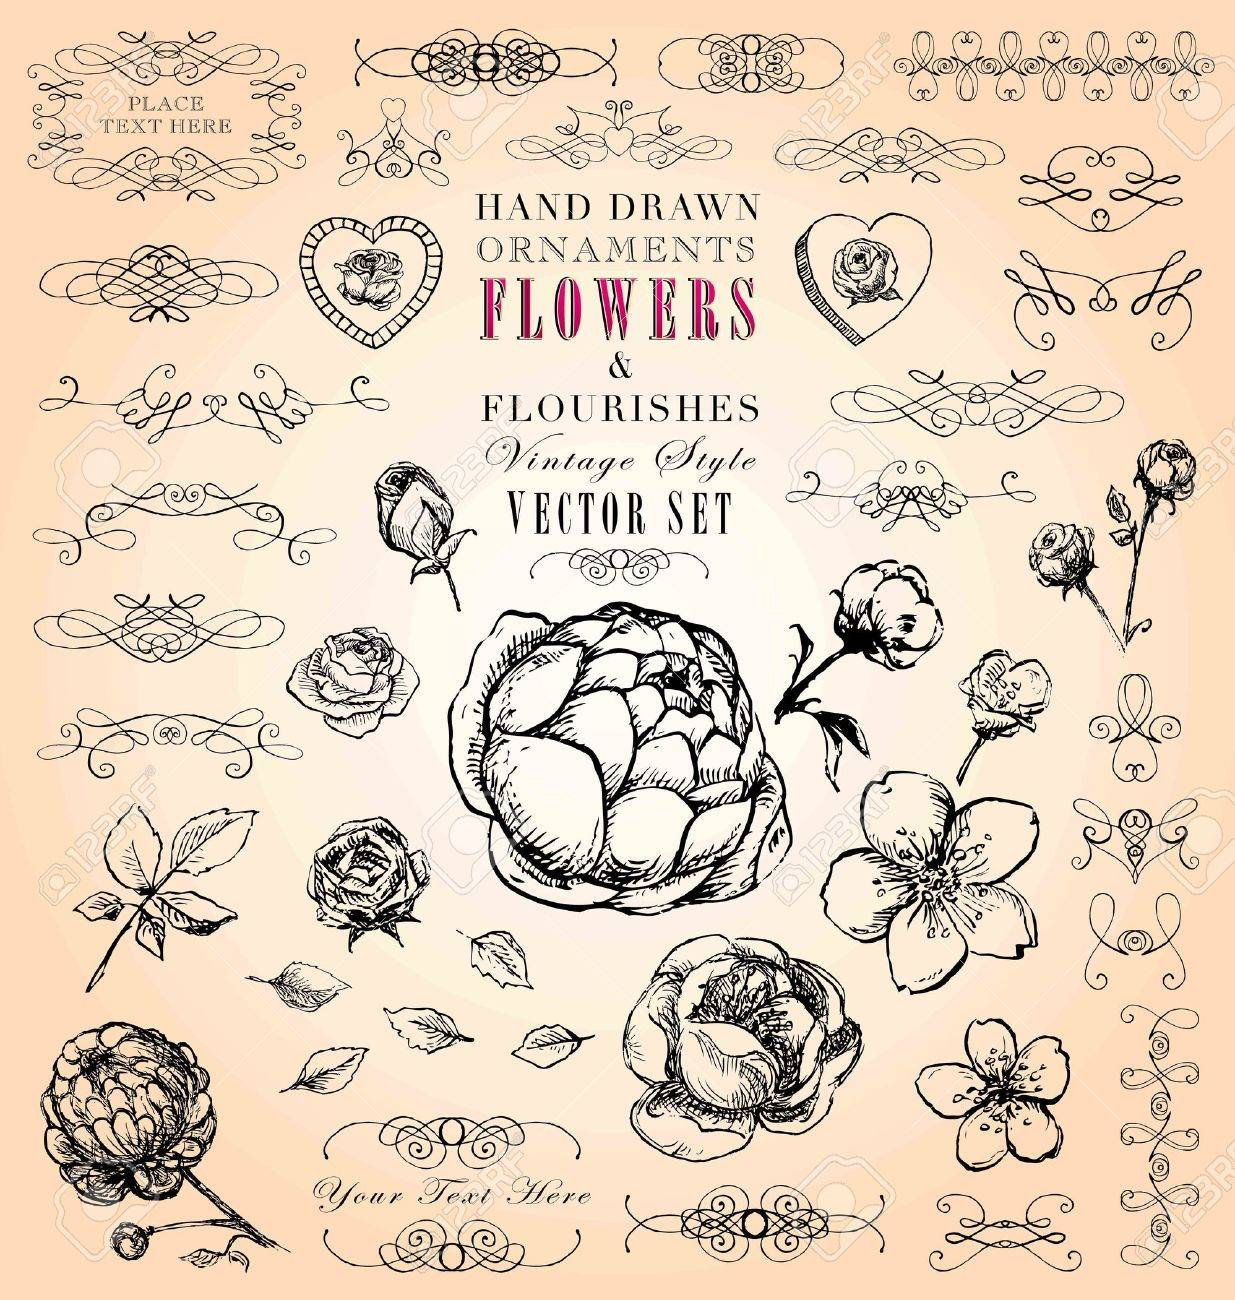 Vintage style ornaments - Hand Drawn Vintage Style Ornaments Flowers Flourishes Vector Set Stock Vector 18412378